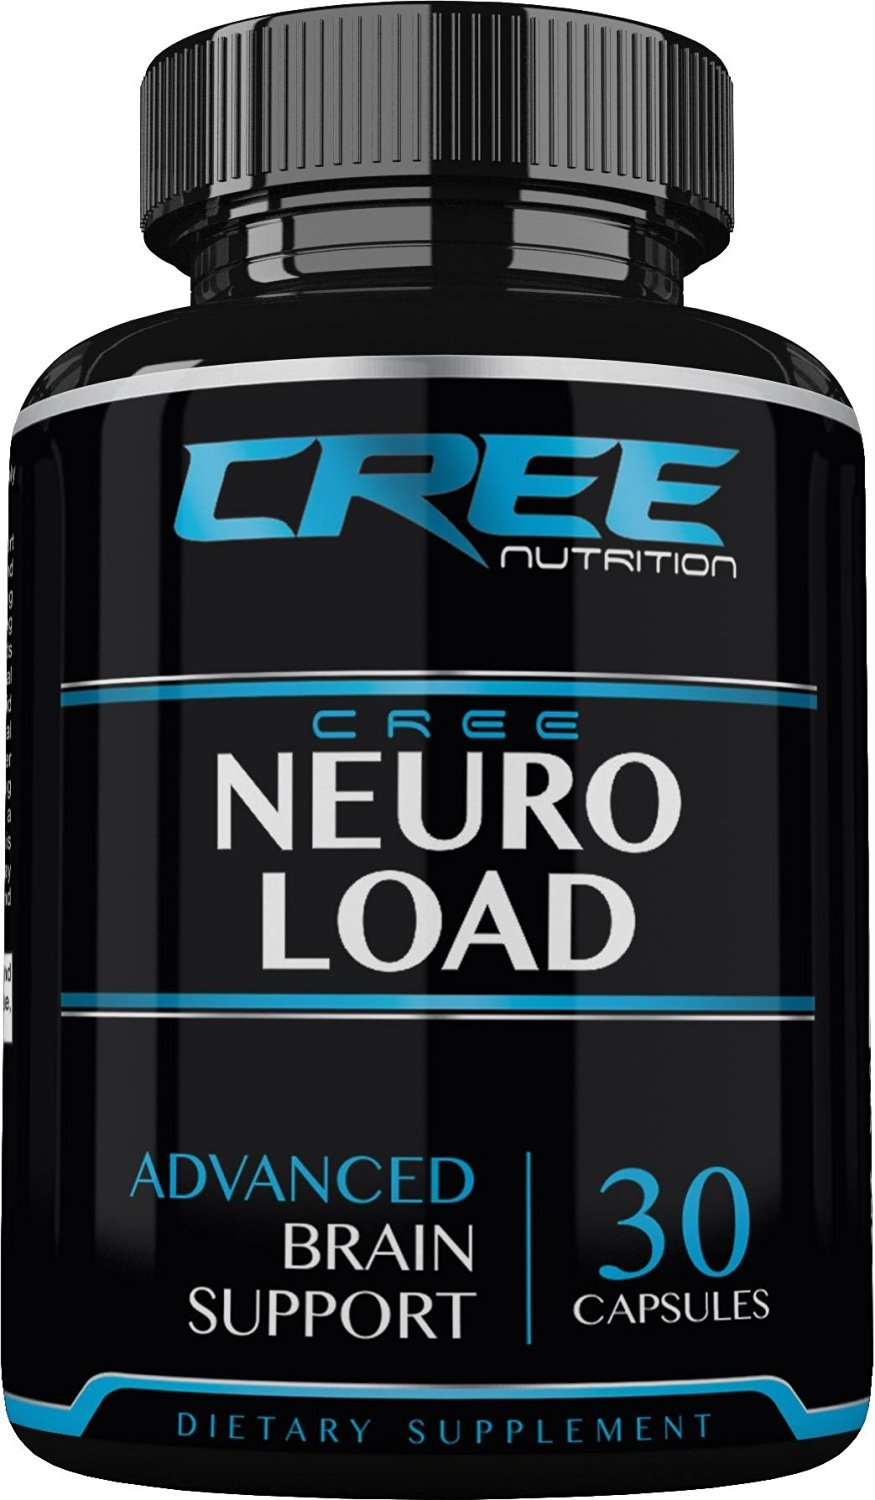 CREE Nutrition Neuro Load, Extra Strength -Energy- Brain Supplement for Focus, Clarity & Memory- Mental Performance Nootropic - Brain Booster Formulated with Super Ginkgo Biloba, St Johns Wort, & More